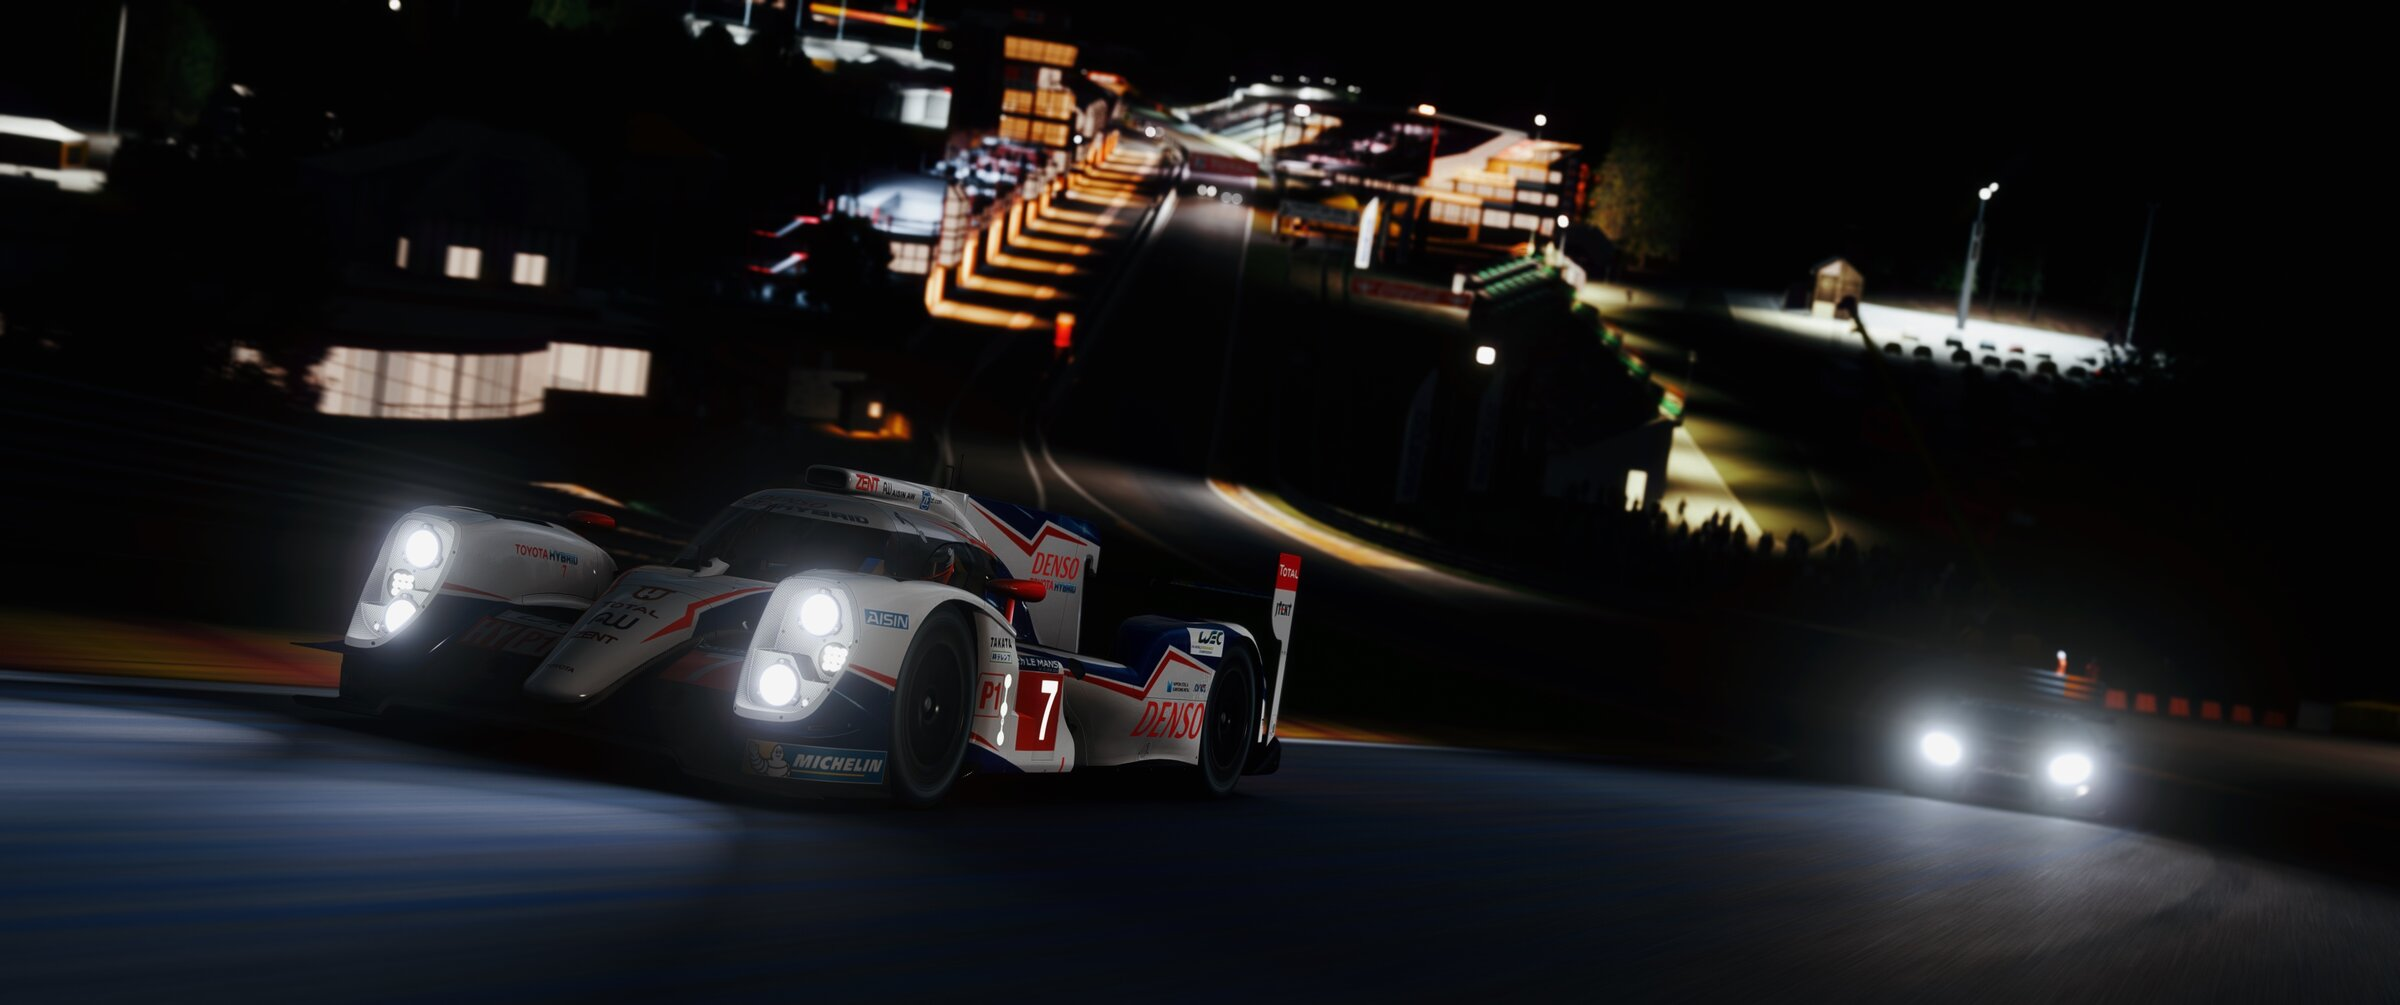 Screenshot_ks_toyota_ts040_spa_23-6-120-1-17-14.jpg